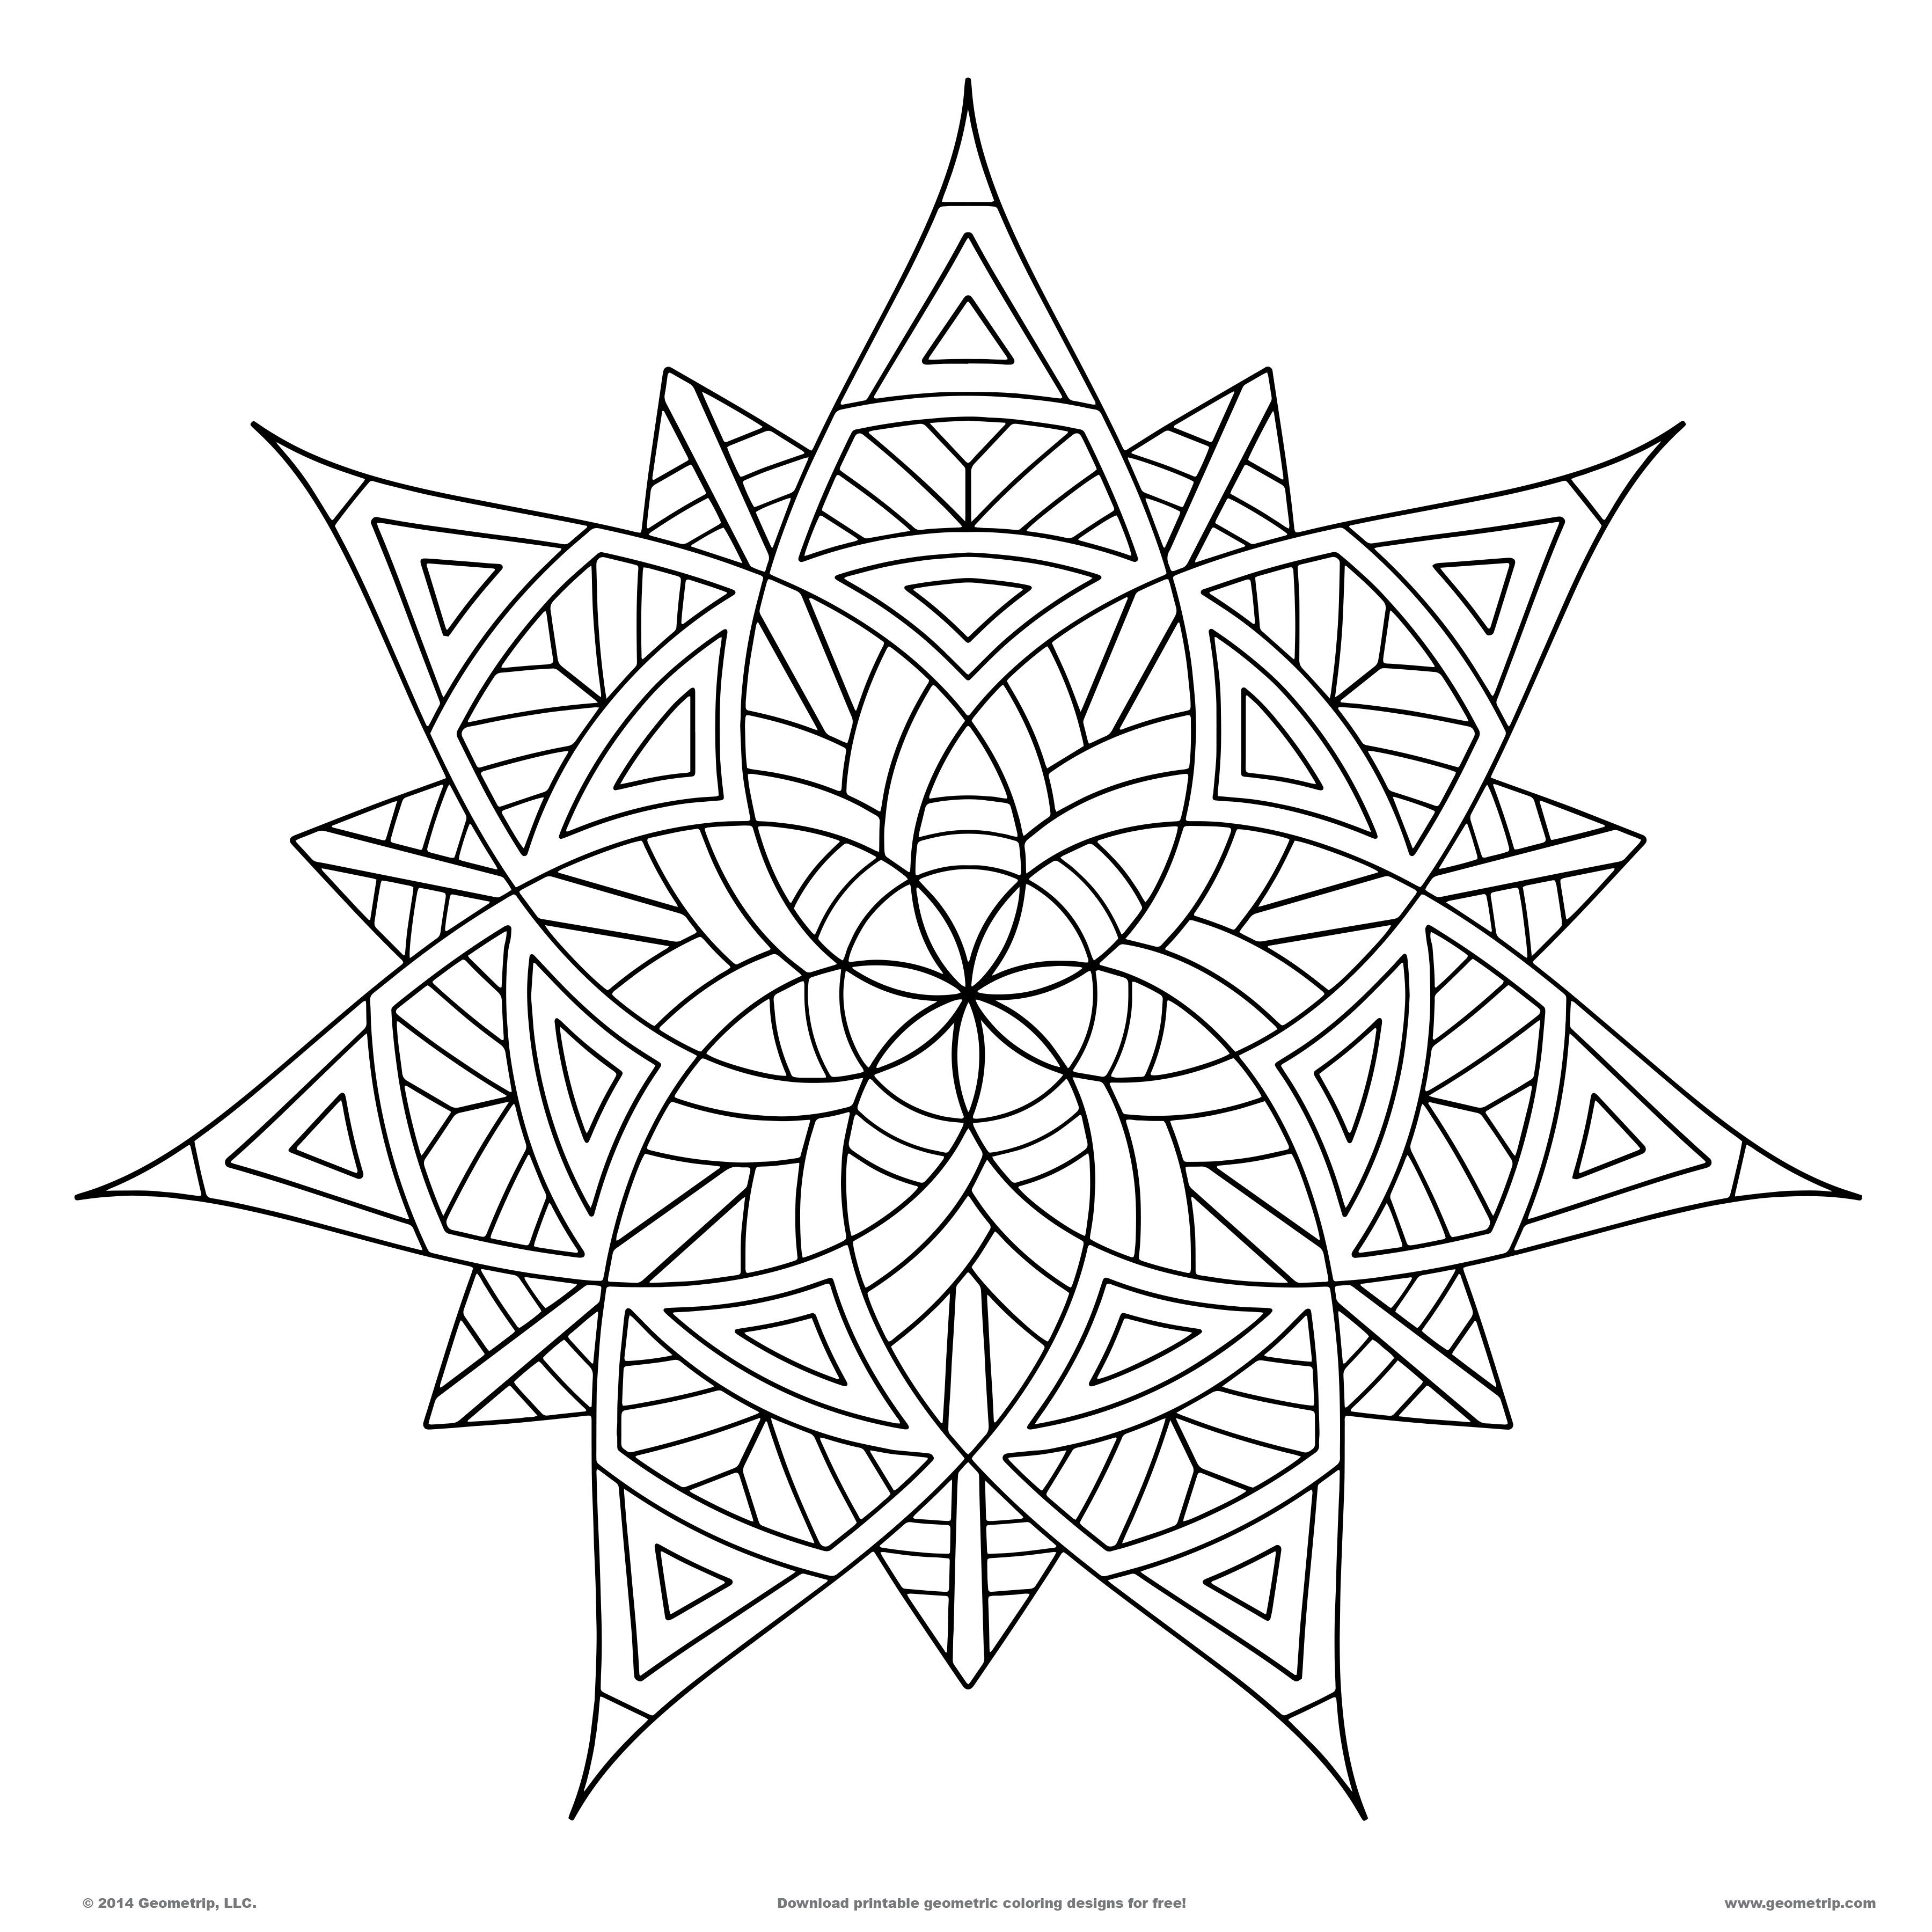 Geometrip Features High Quality Geometric Coloring Designs That You Can Download And Print On Any Printer The Are Available In PDF